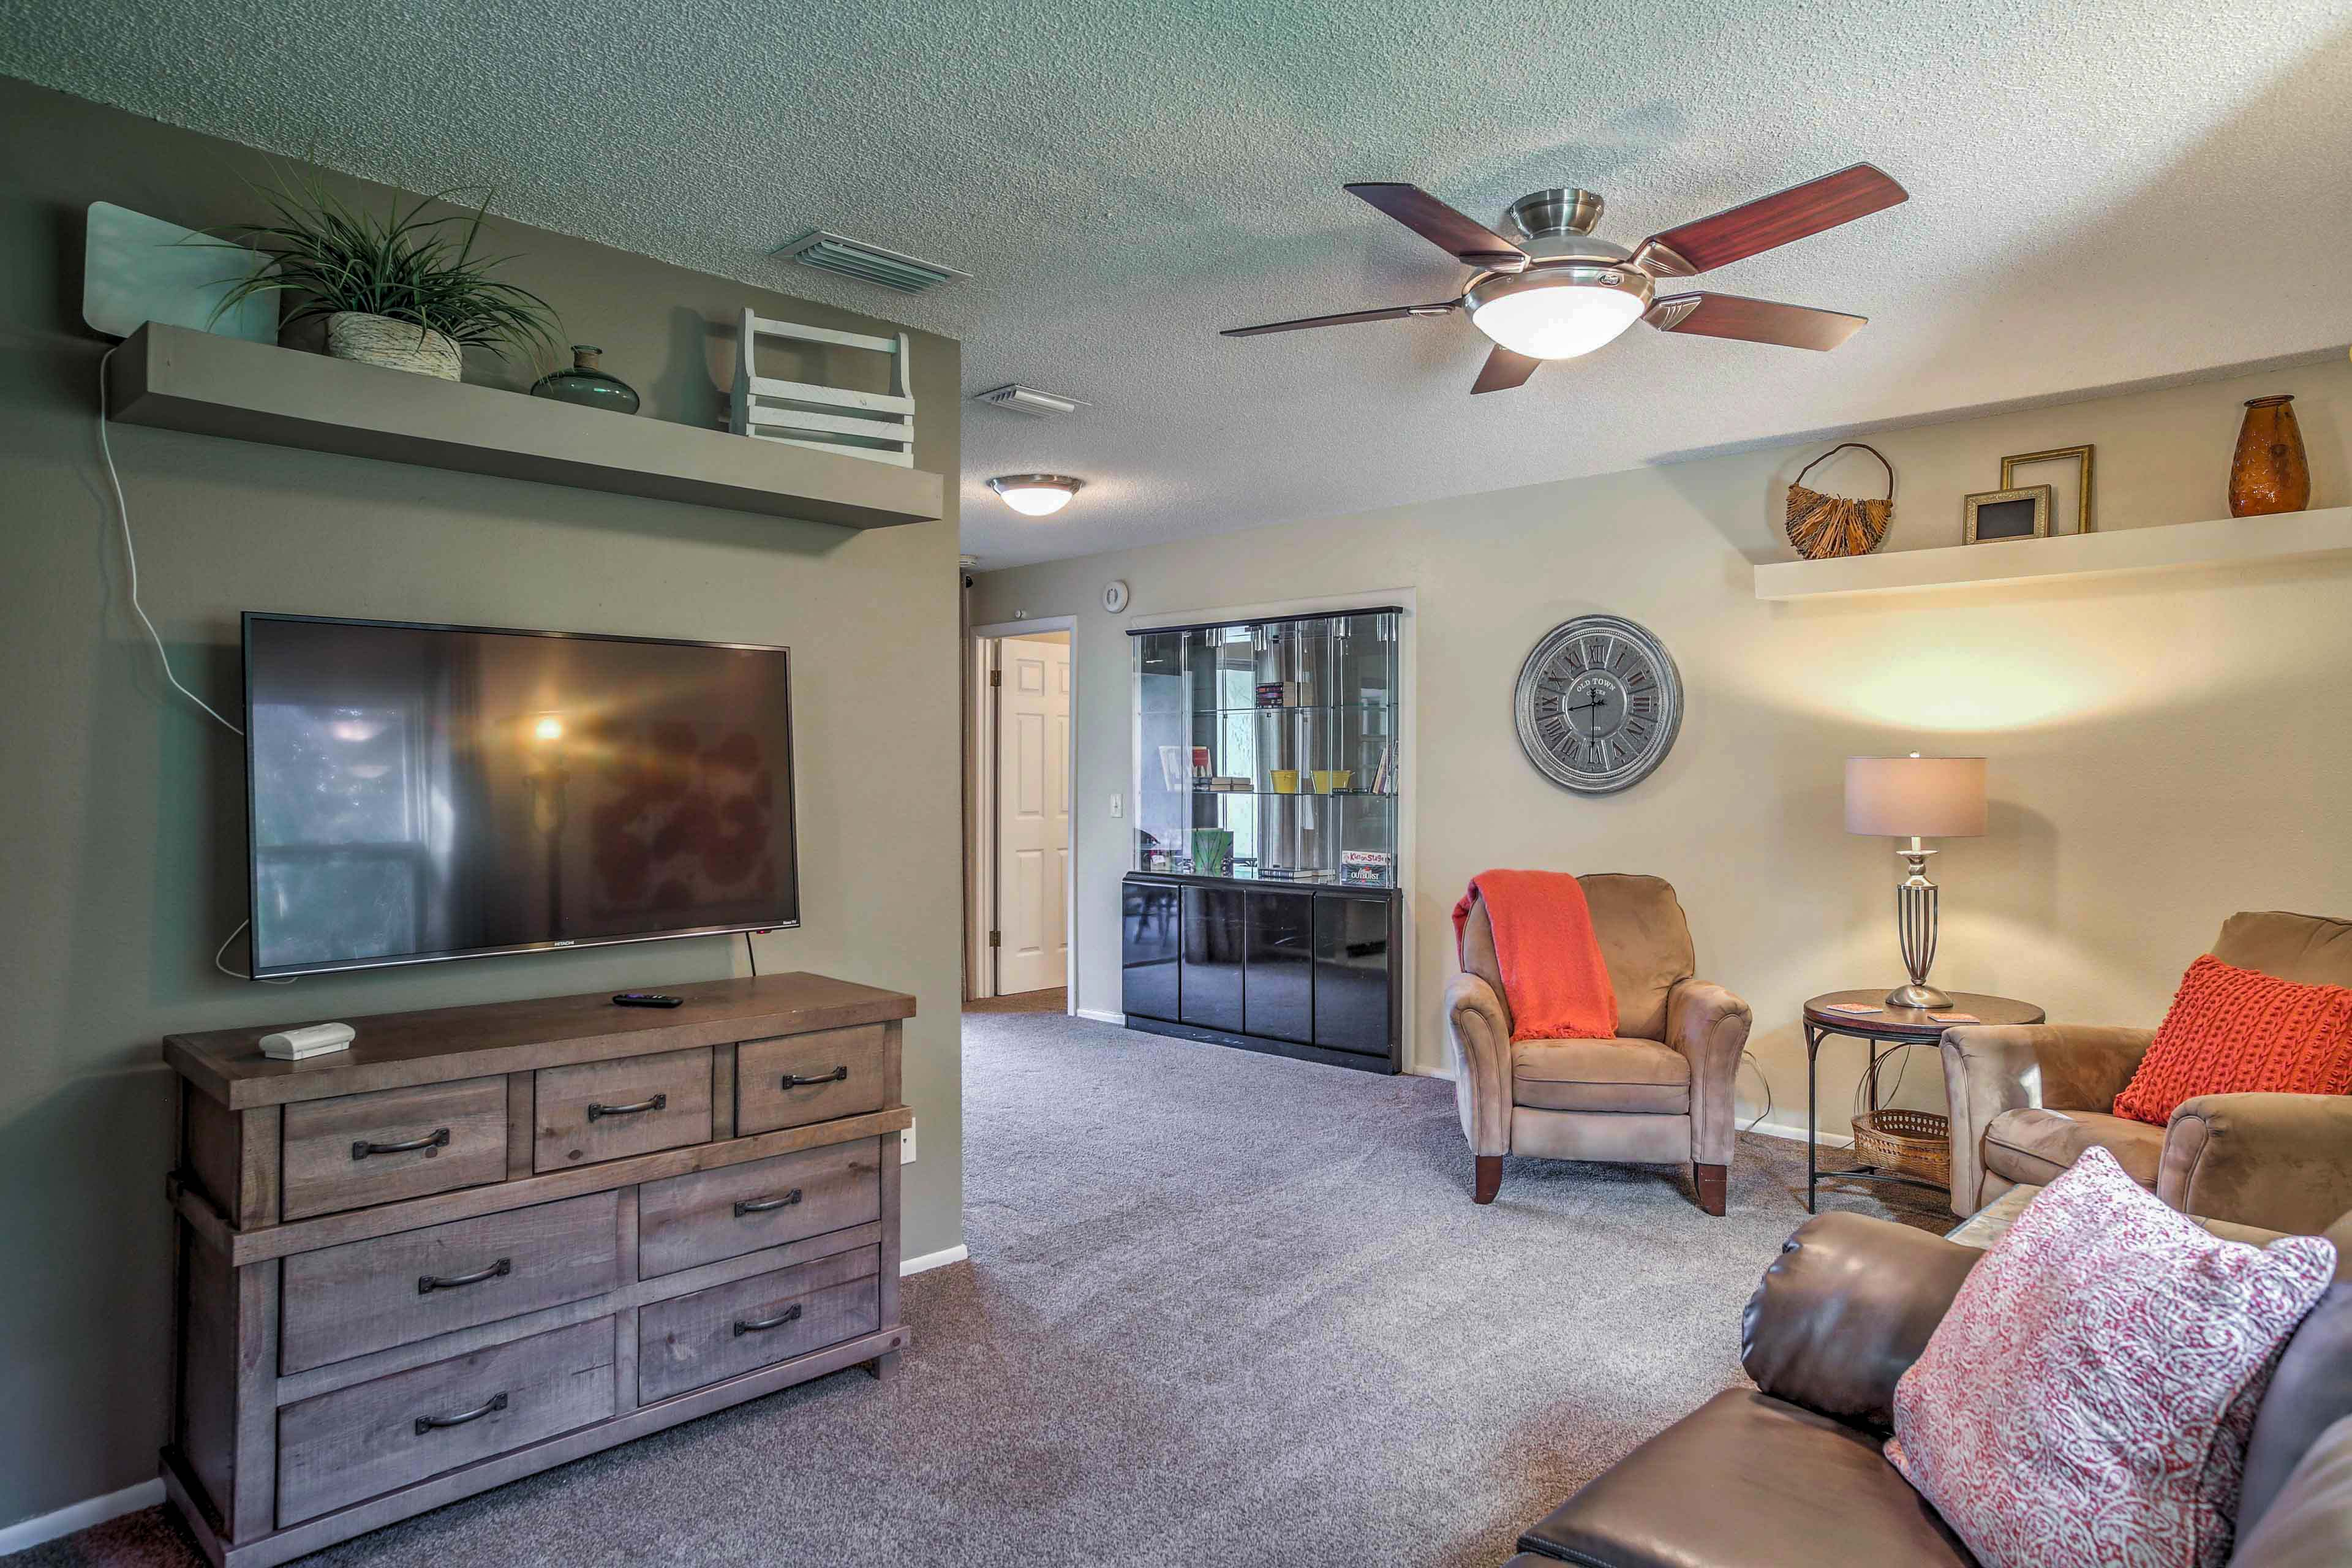 Find a home-away-from-home at this Apopka vacation rental property!